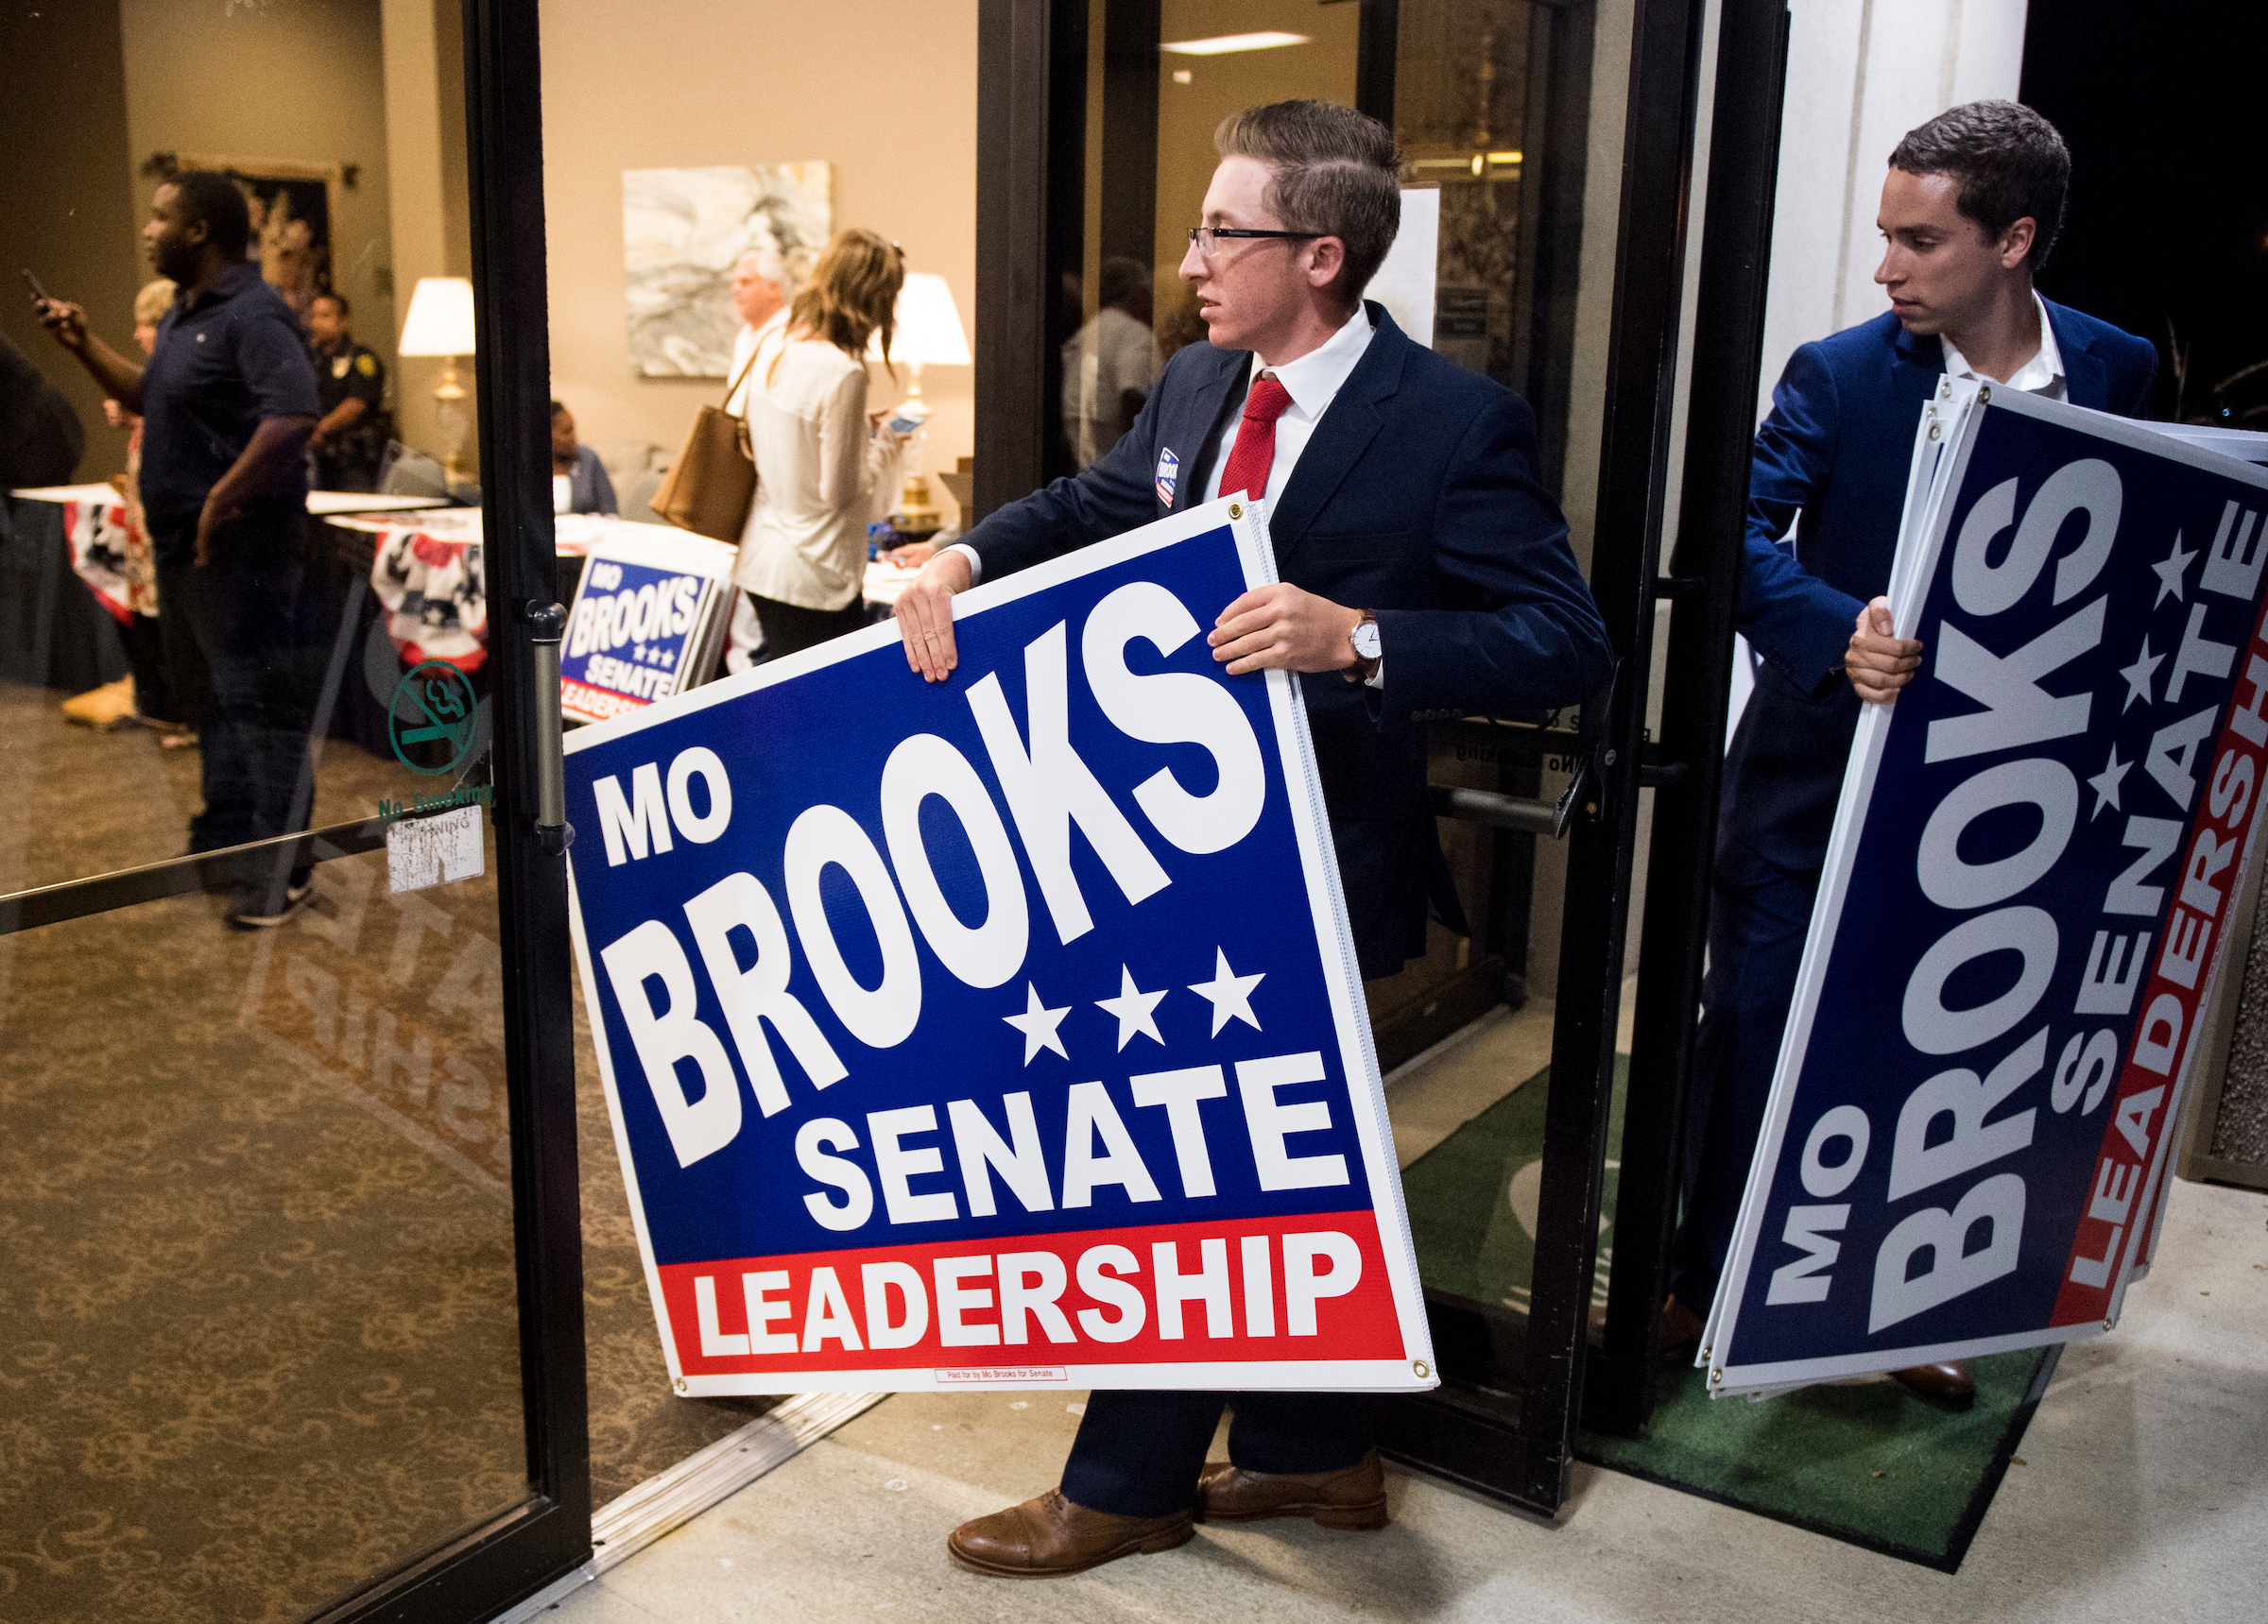 Campaign workers for Rep. Mo Brooks, R-Ala., carry campaign signs out of the building after the U.S. Senate candidate forum held by the Shelby County Republican Party in Pelham, Ala., on Friday. (Bill Clark/CQ Roll Call)